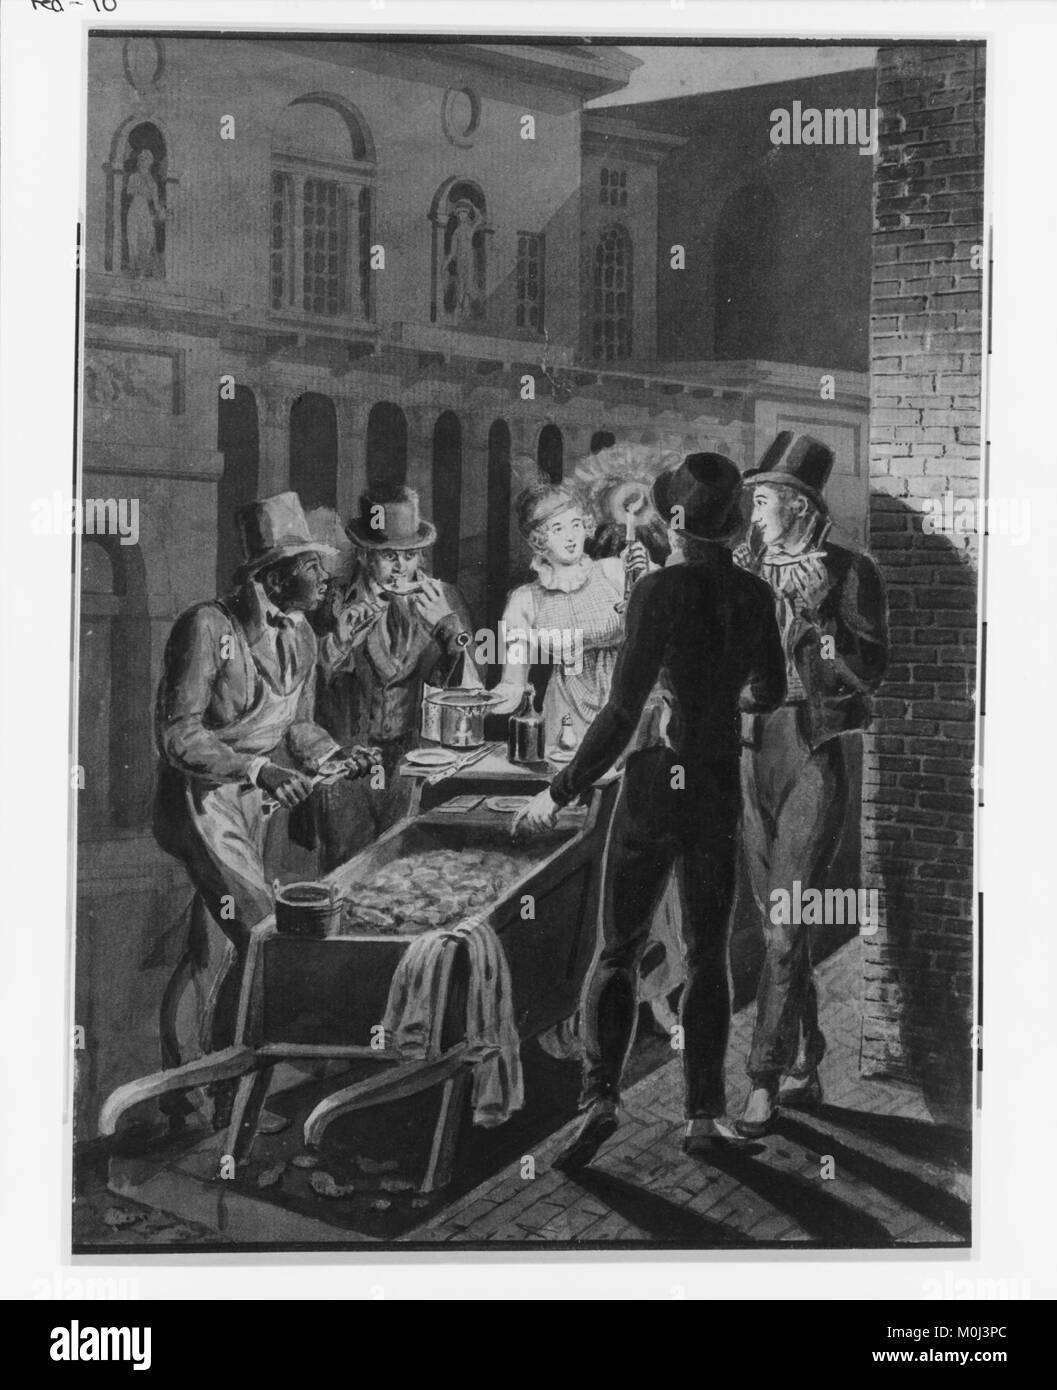 Nightlife in Philadelphia—an Oyster Barrow in front of the Chestnut Street Theater MET 128527 - Stock Image